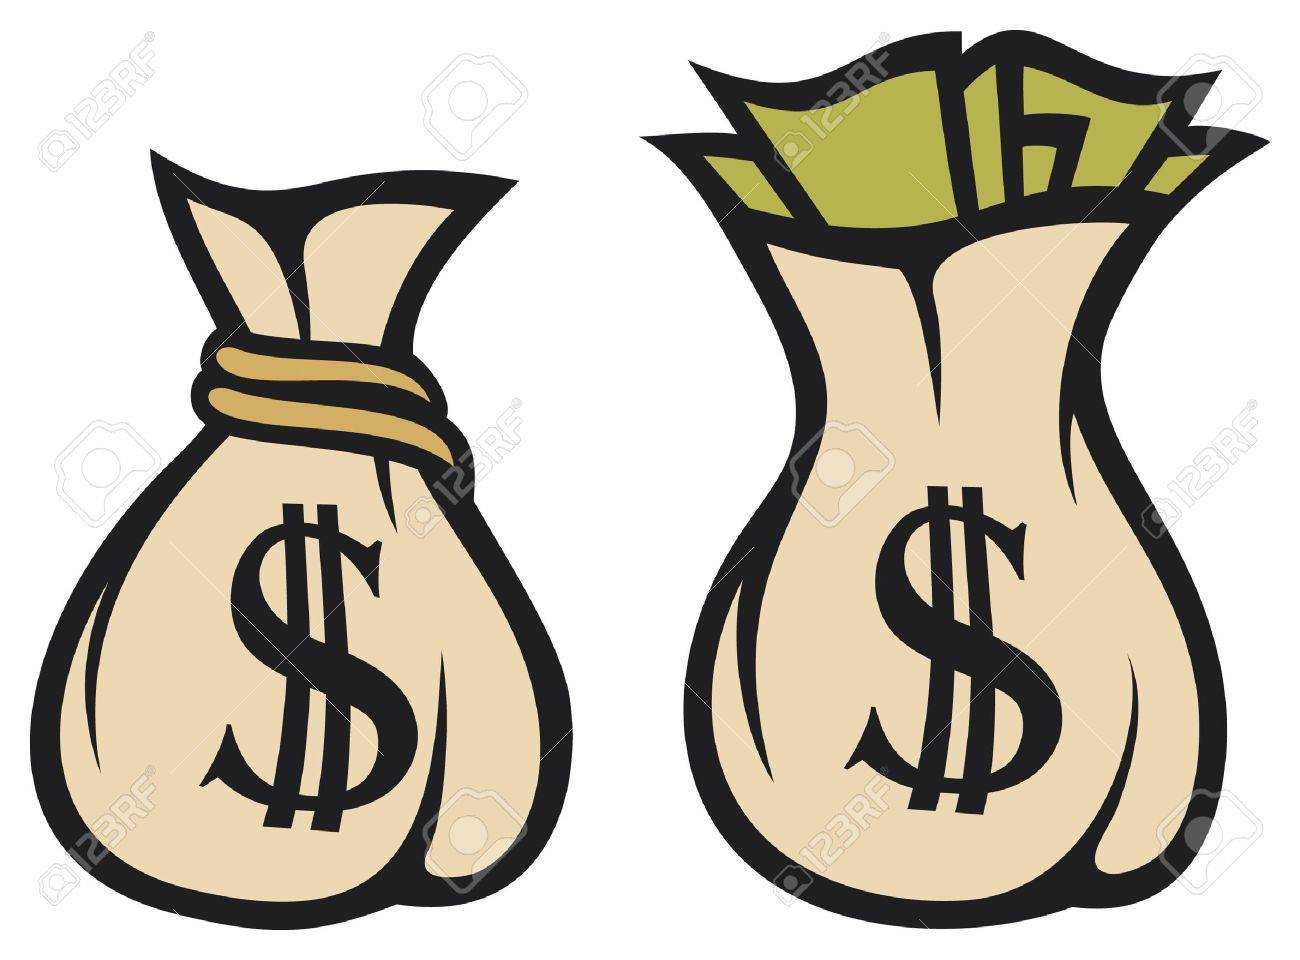 Money bag with dollar sign vector illustration Stock Vector - 15594648